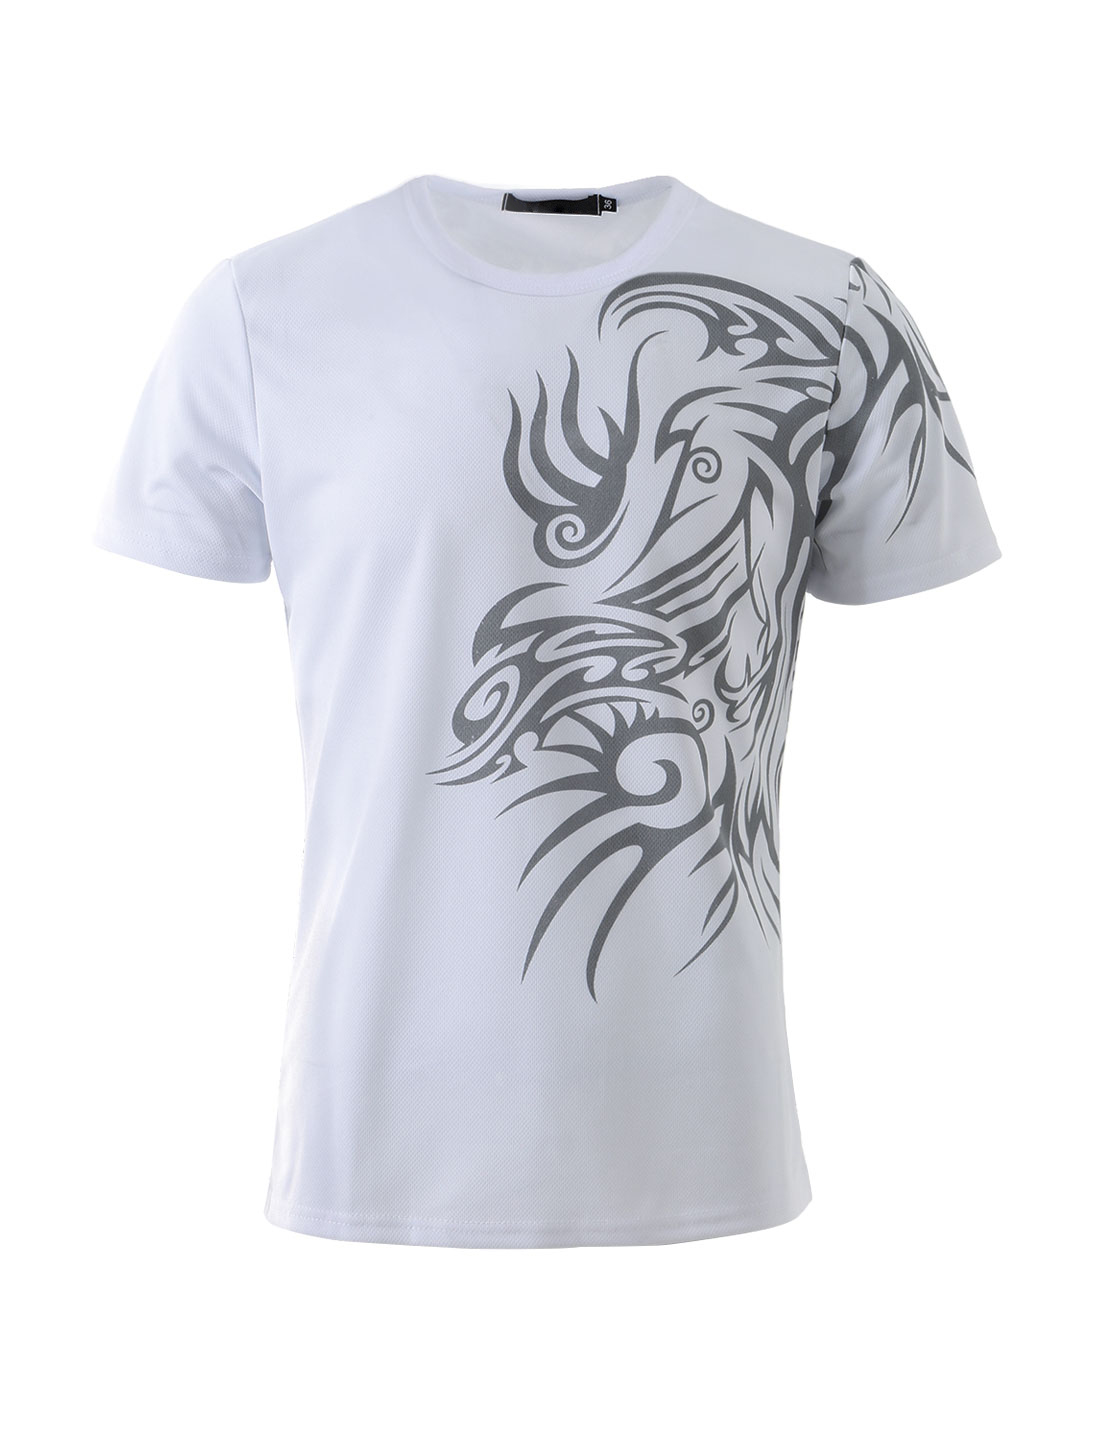 S White Round Neck Two Tone Design Skinny Fit Men Summer Casual Top Shirt